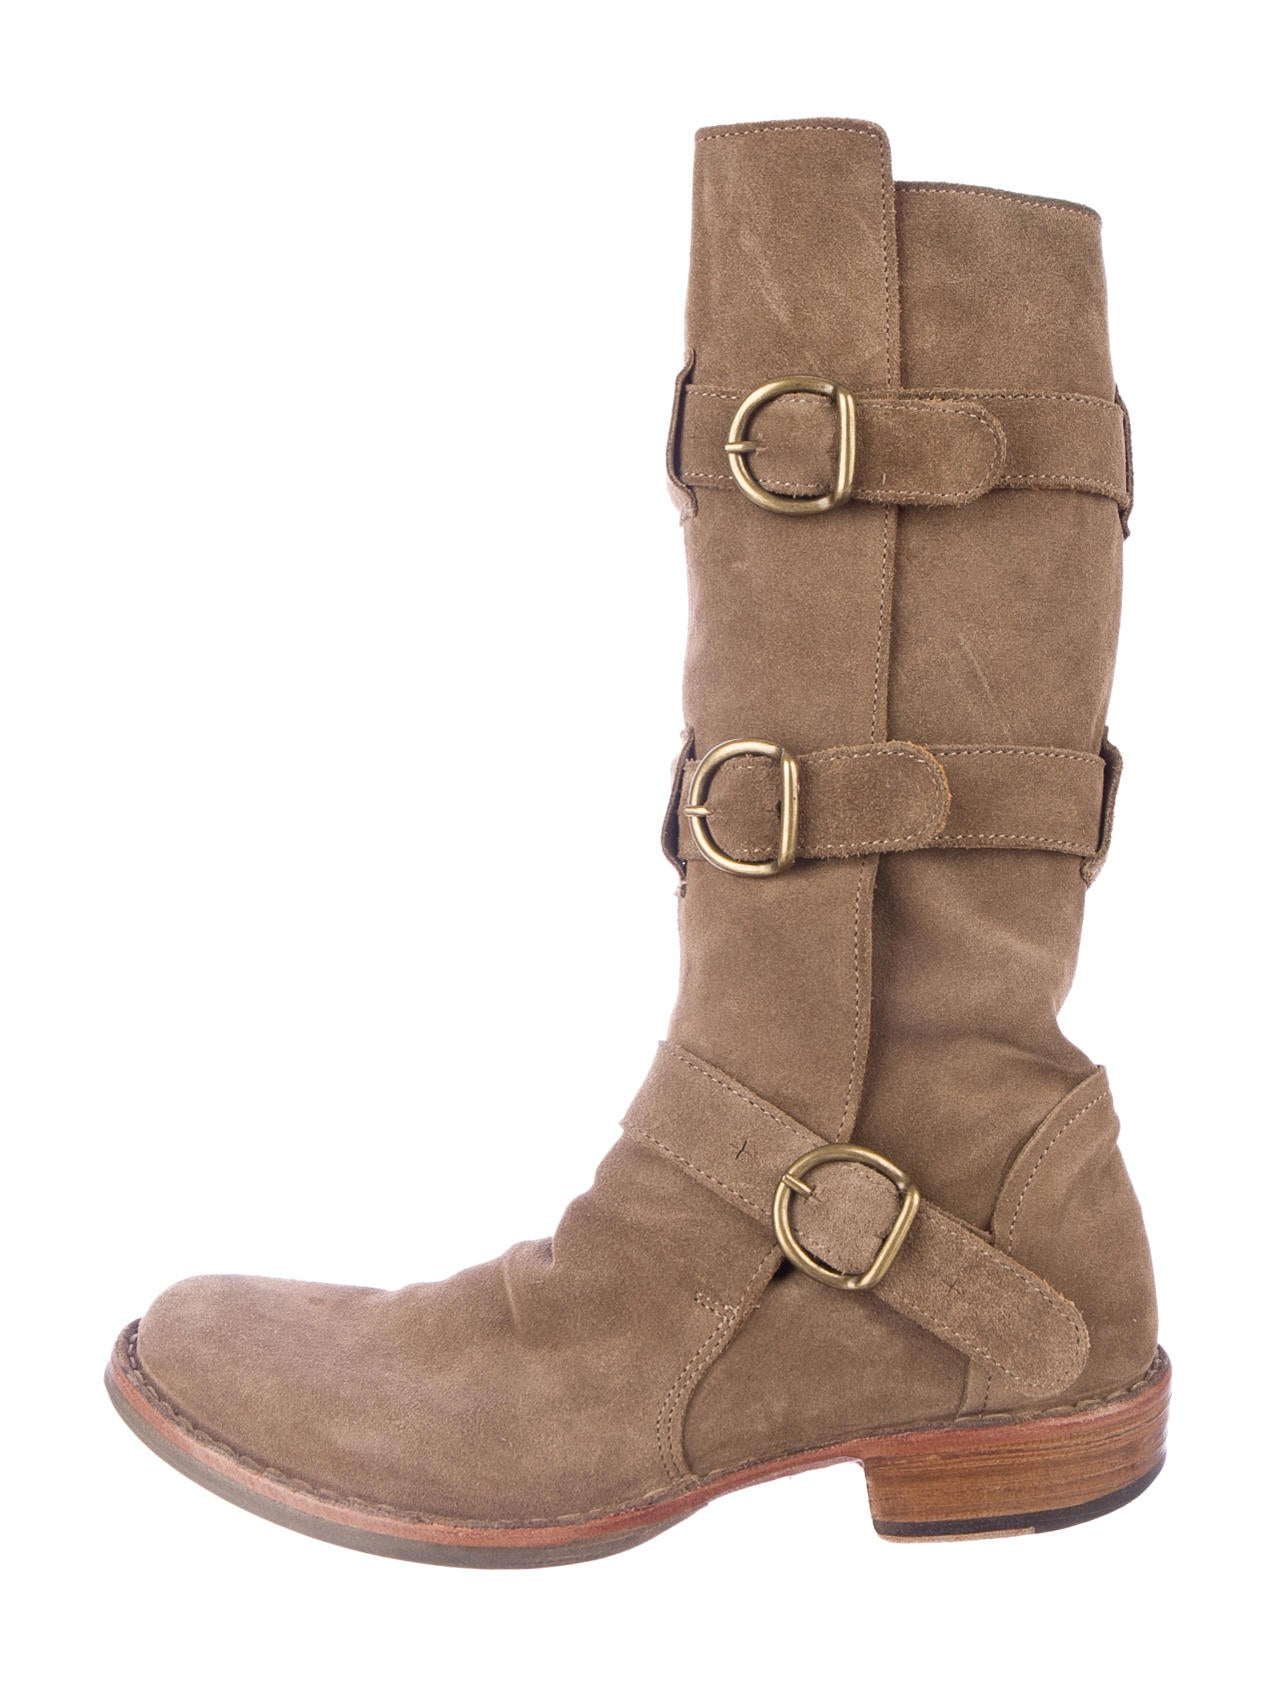 fiorentini baker ankle boots shoes wfb20072 the